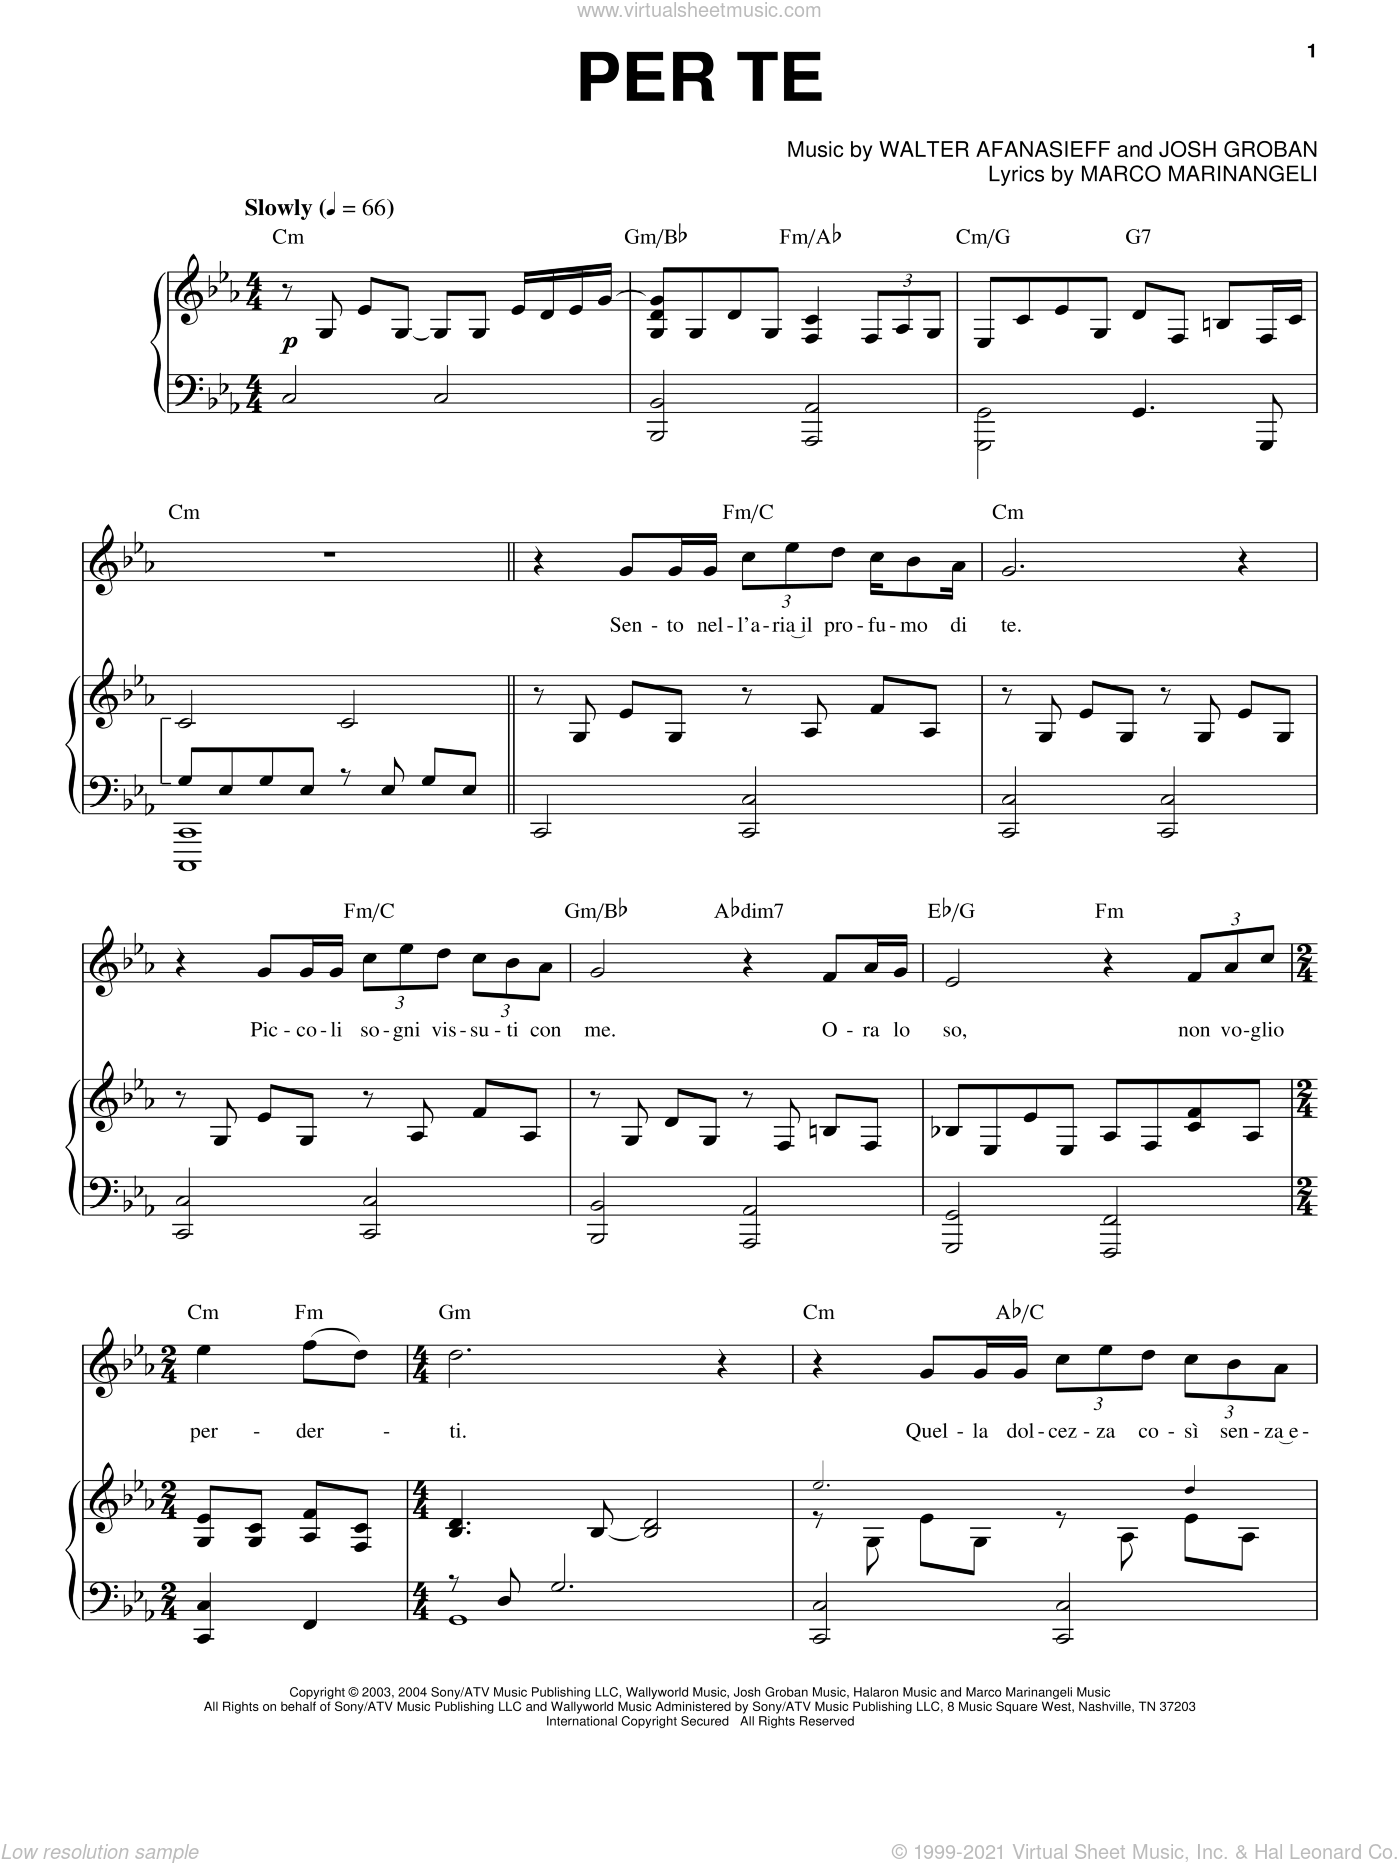 Per Te sheet music for voice and piano by Josh Groban, Marco Marinangeli and Walter Afanasieff, intermediate skill level